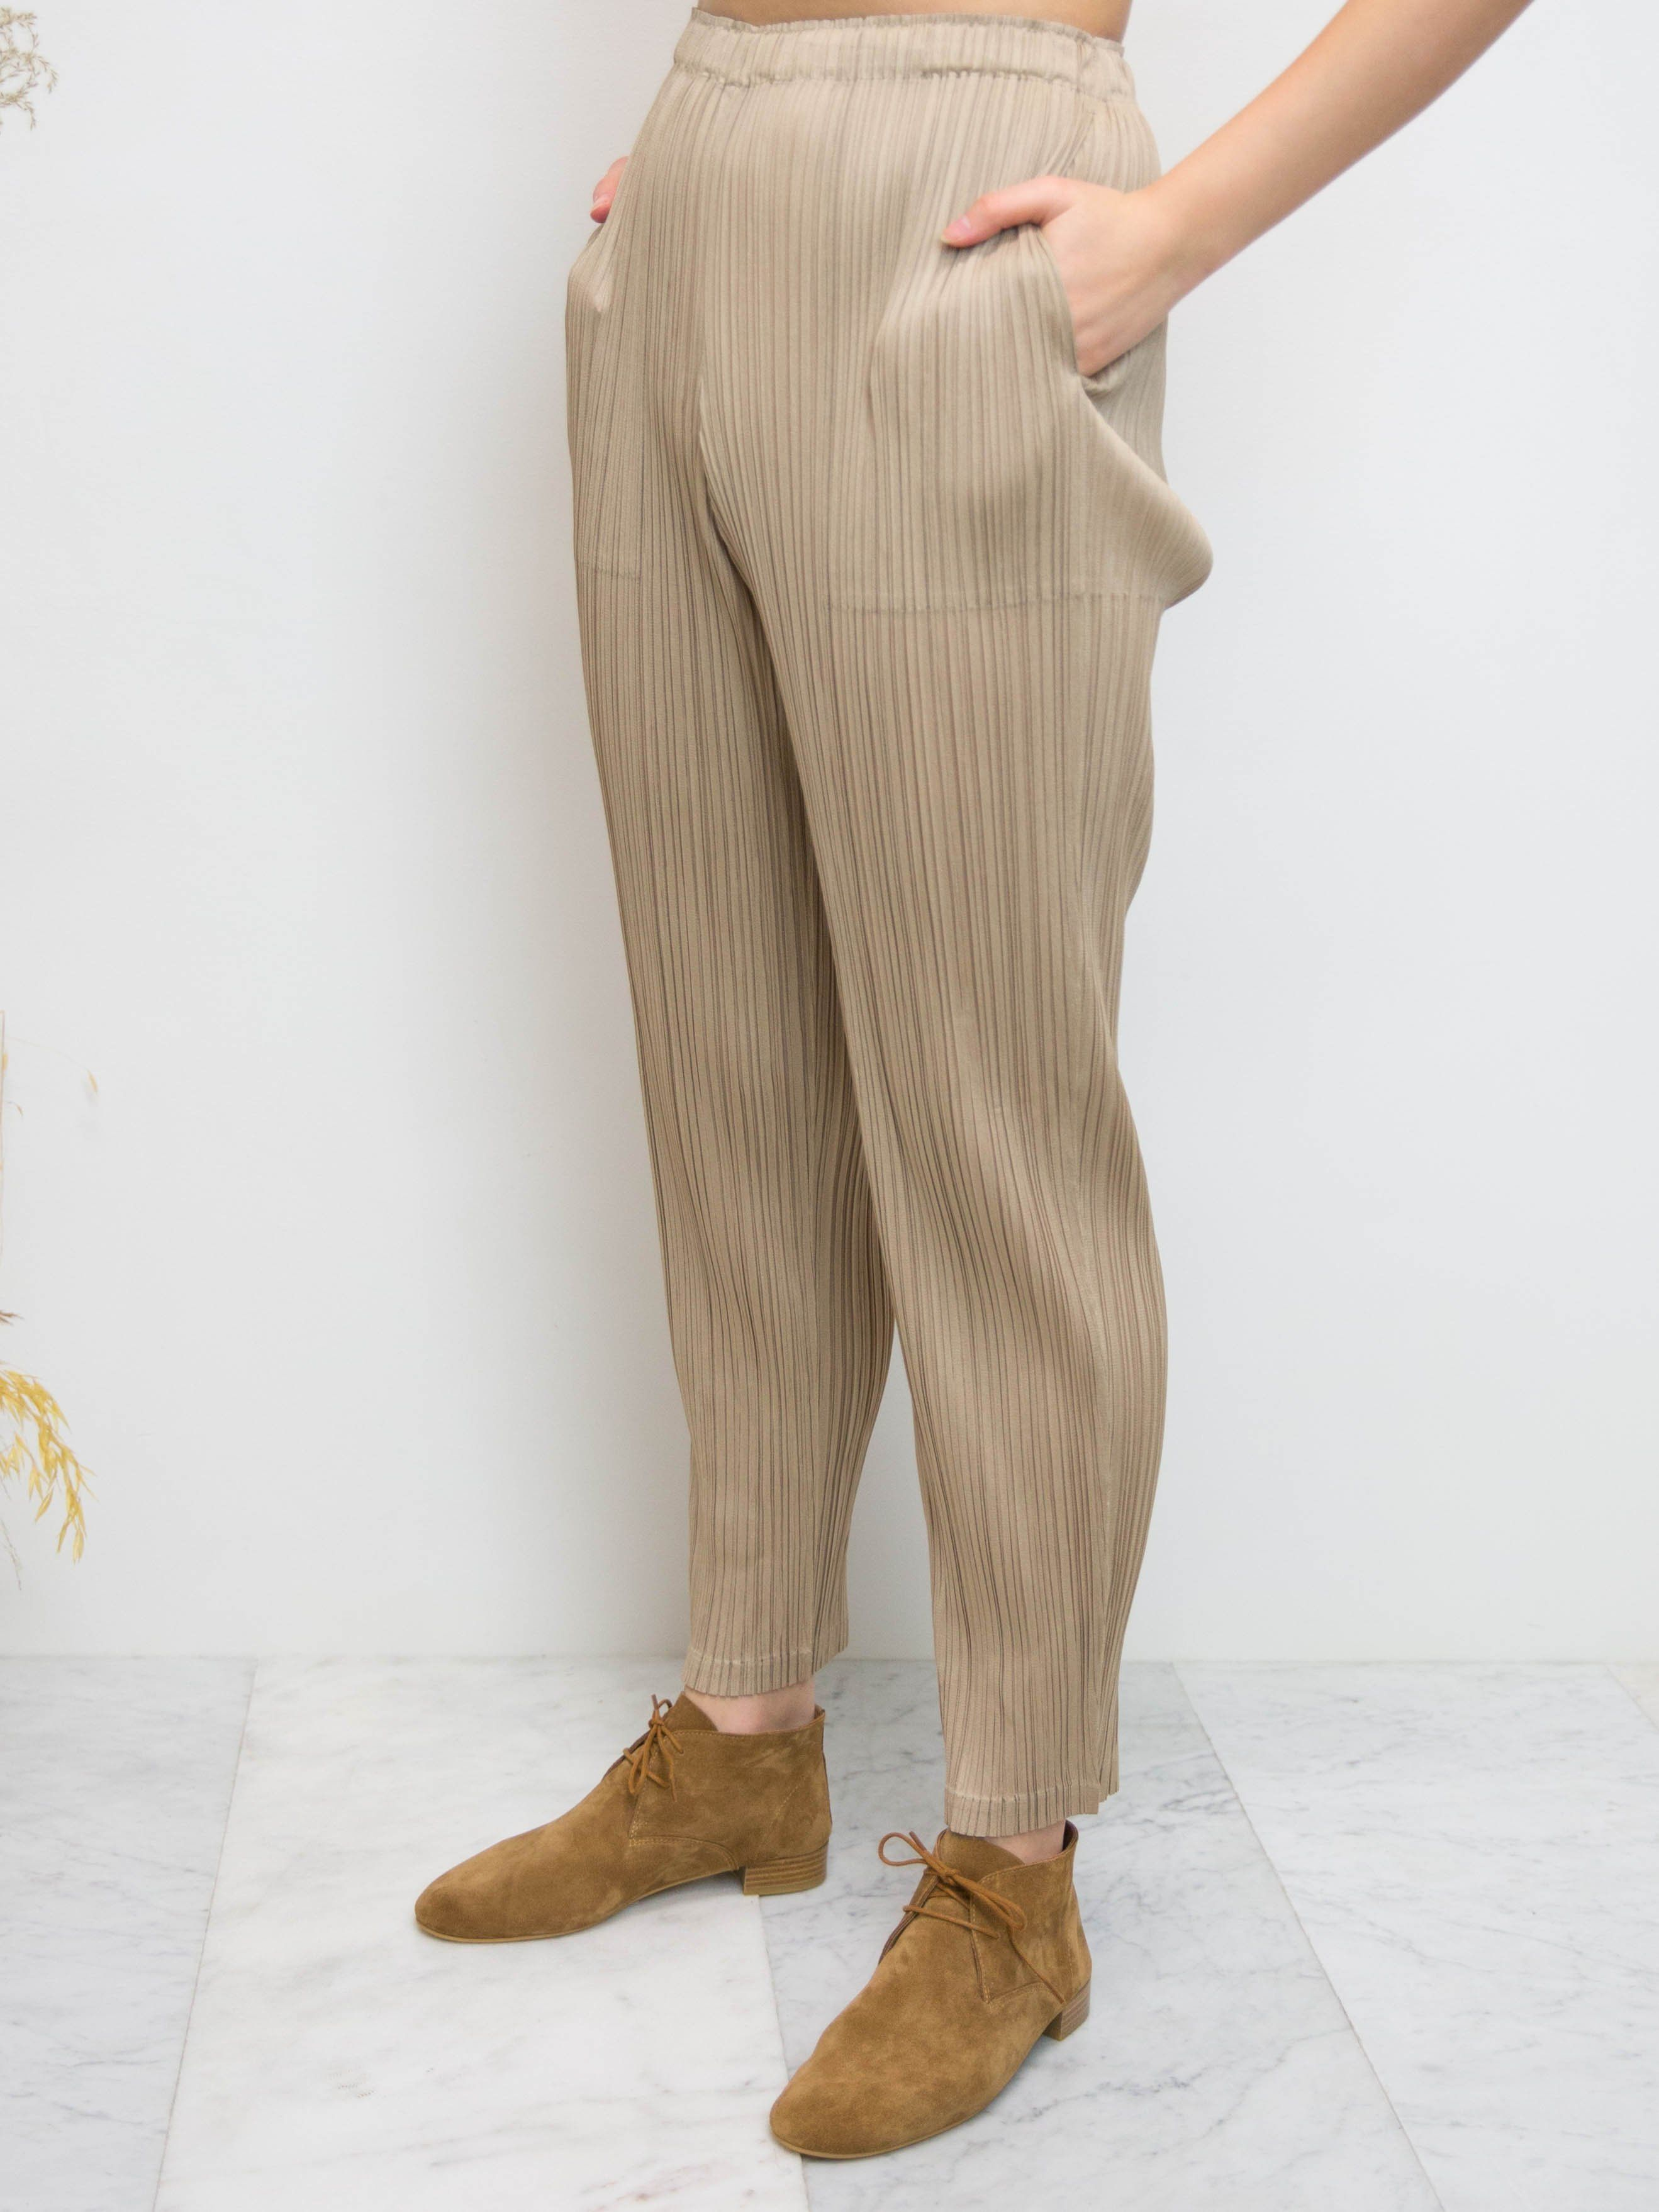 66d4a2fc57ac PLEATS PLEASE ISSEY MIYAKE Monthly Colours September 2 Pants ...